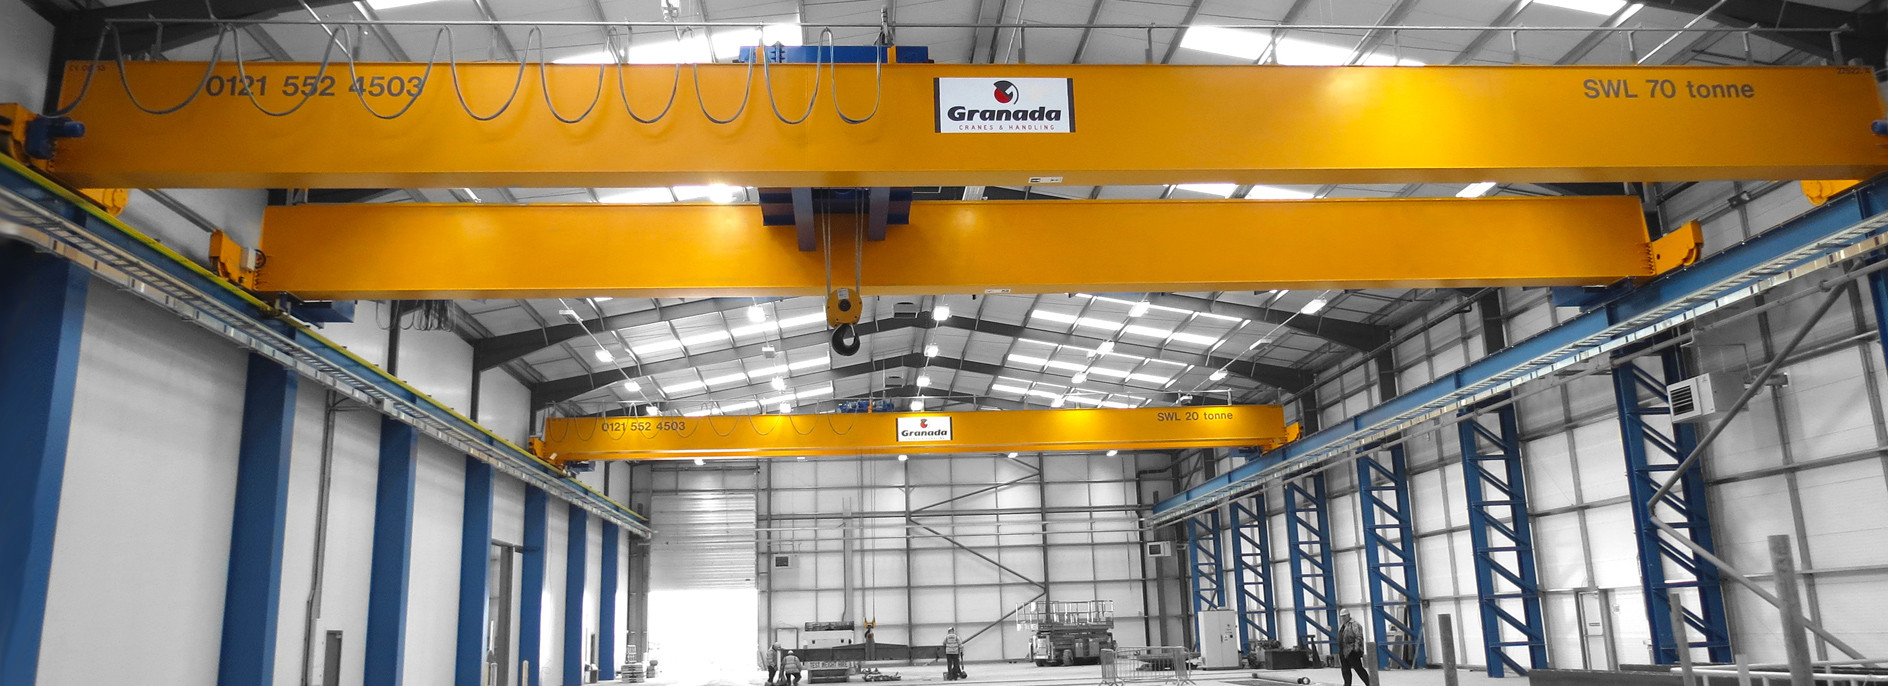 70 tonne double girder crane for a machine casting company